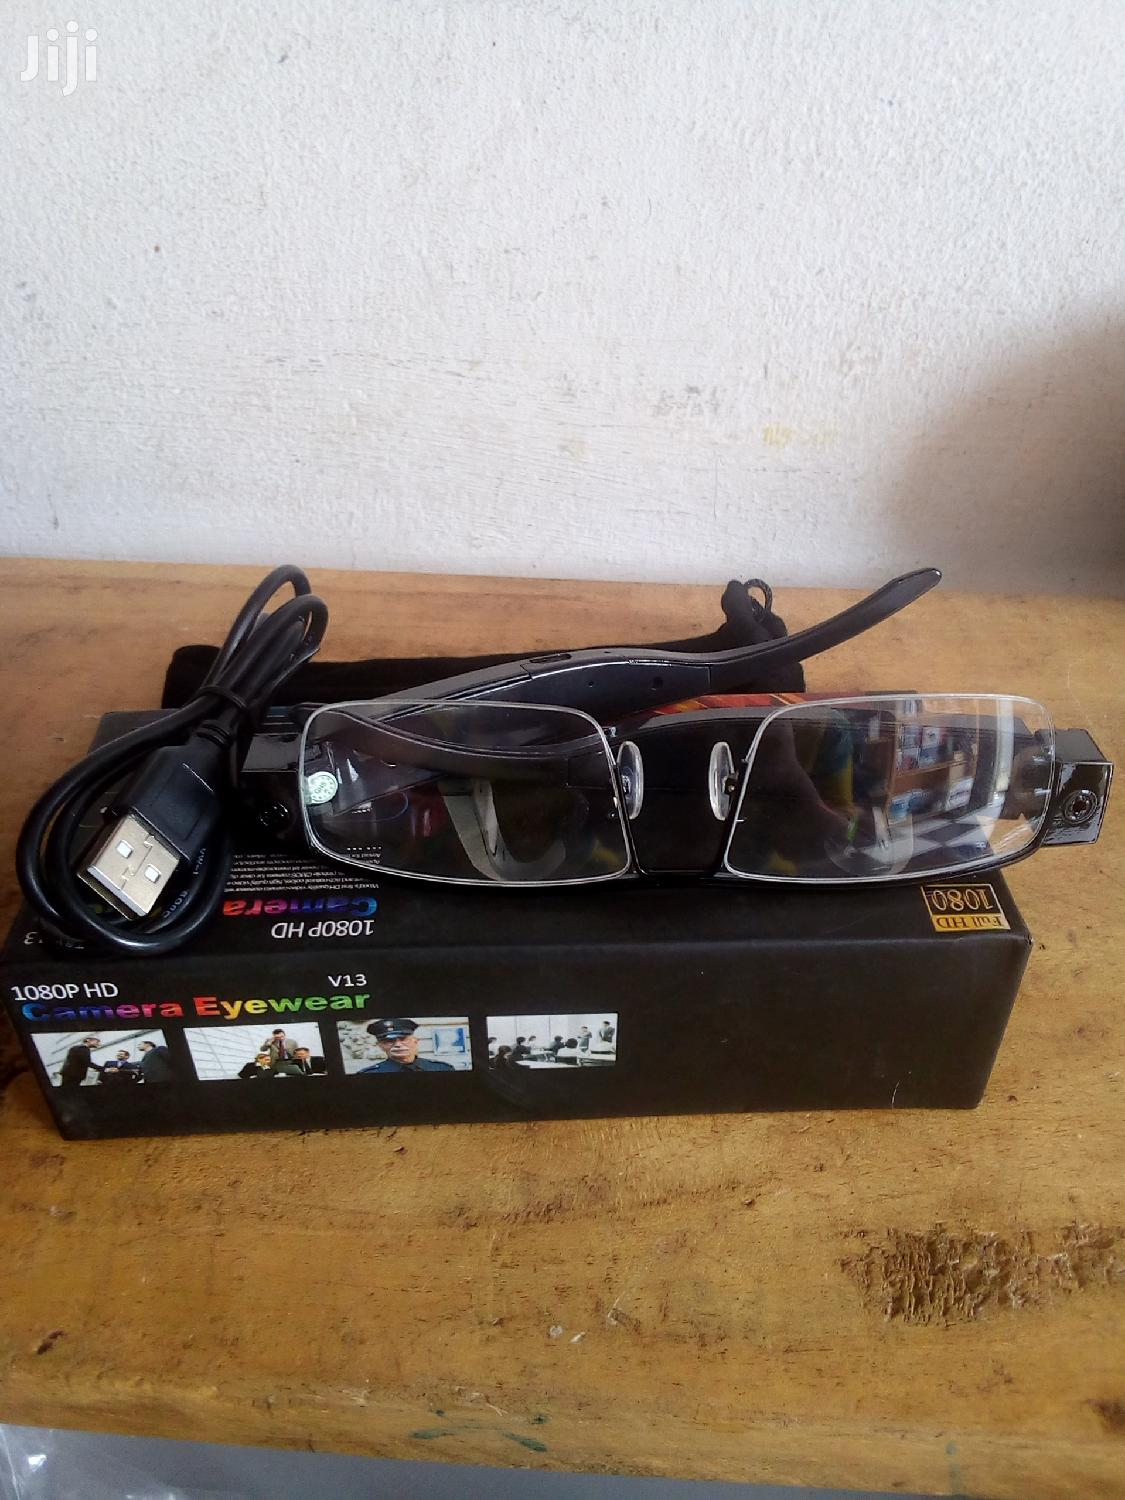 Camera Eyewear 1080P | Security & Surveillance for sale in Ashaiman Municipal, Greater Accra, Ghana